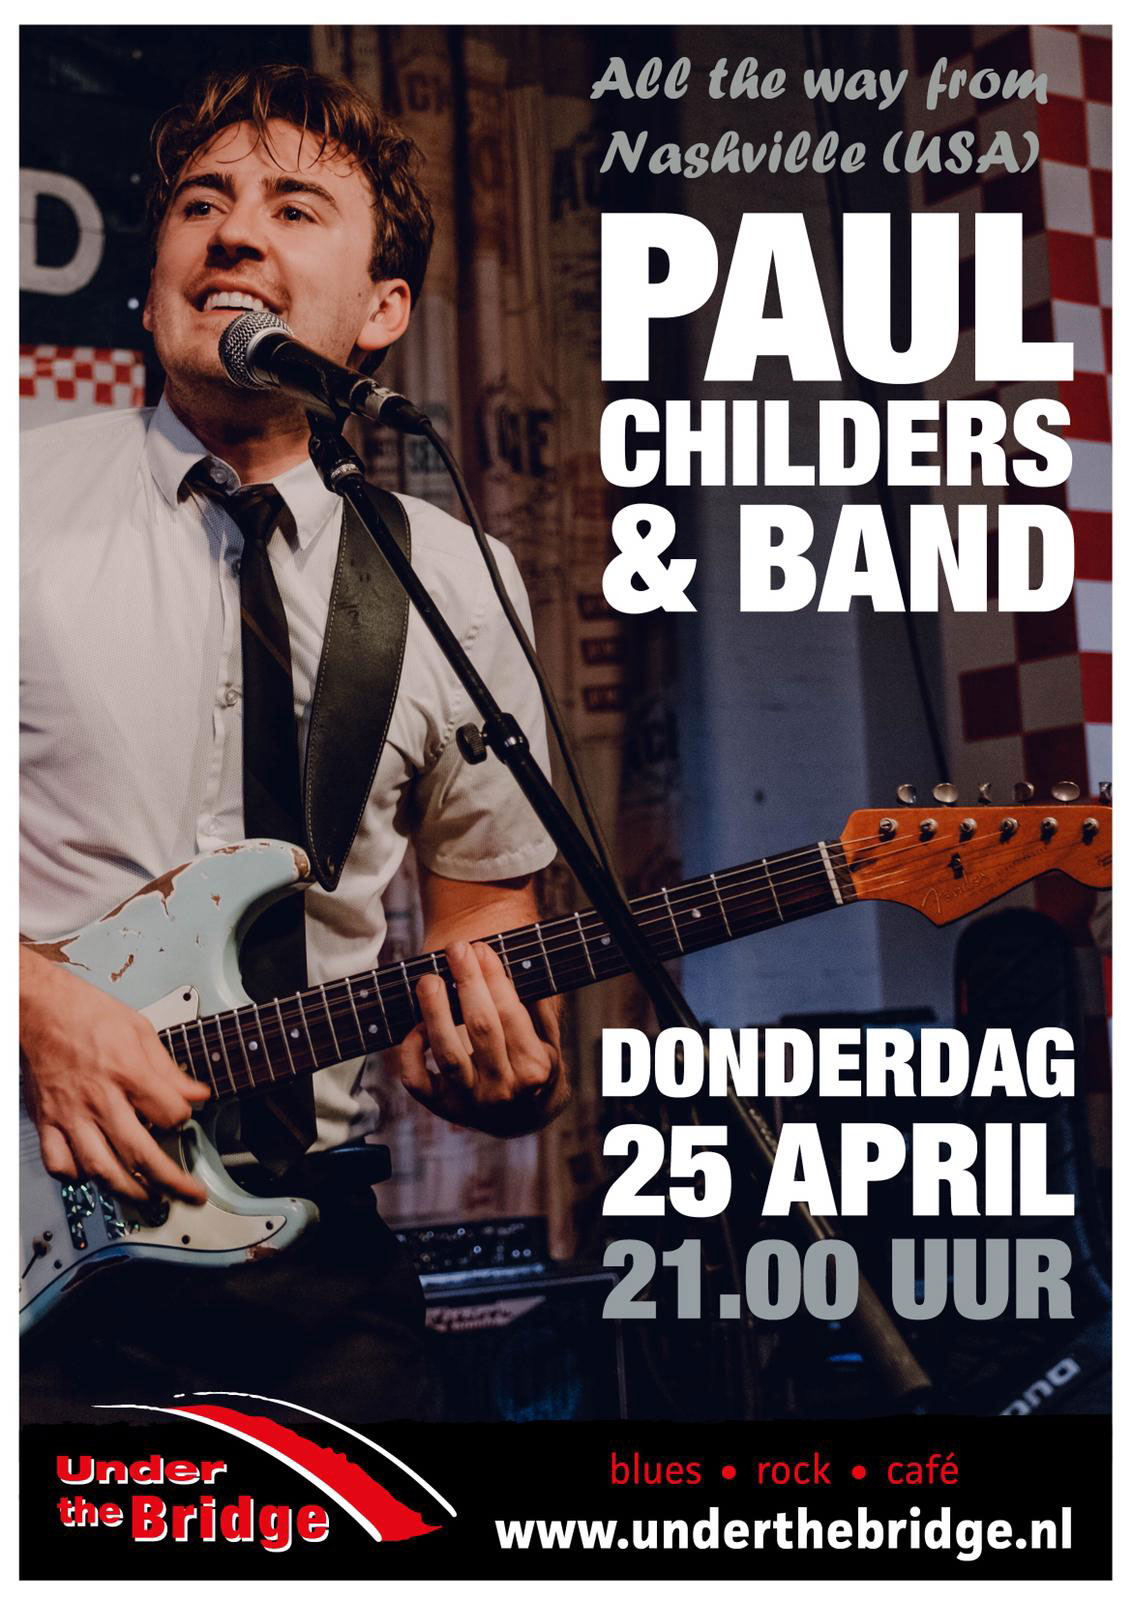 Paul Childers & Band live in Under The Bridge